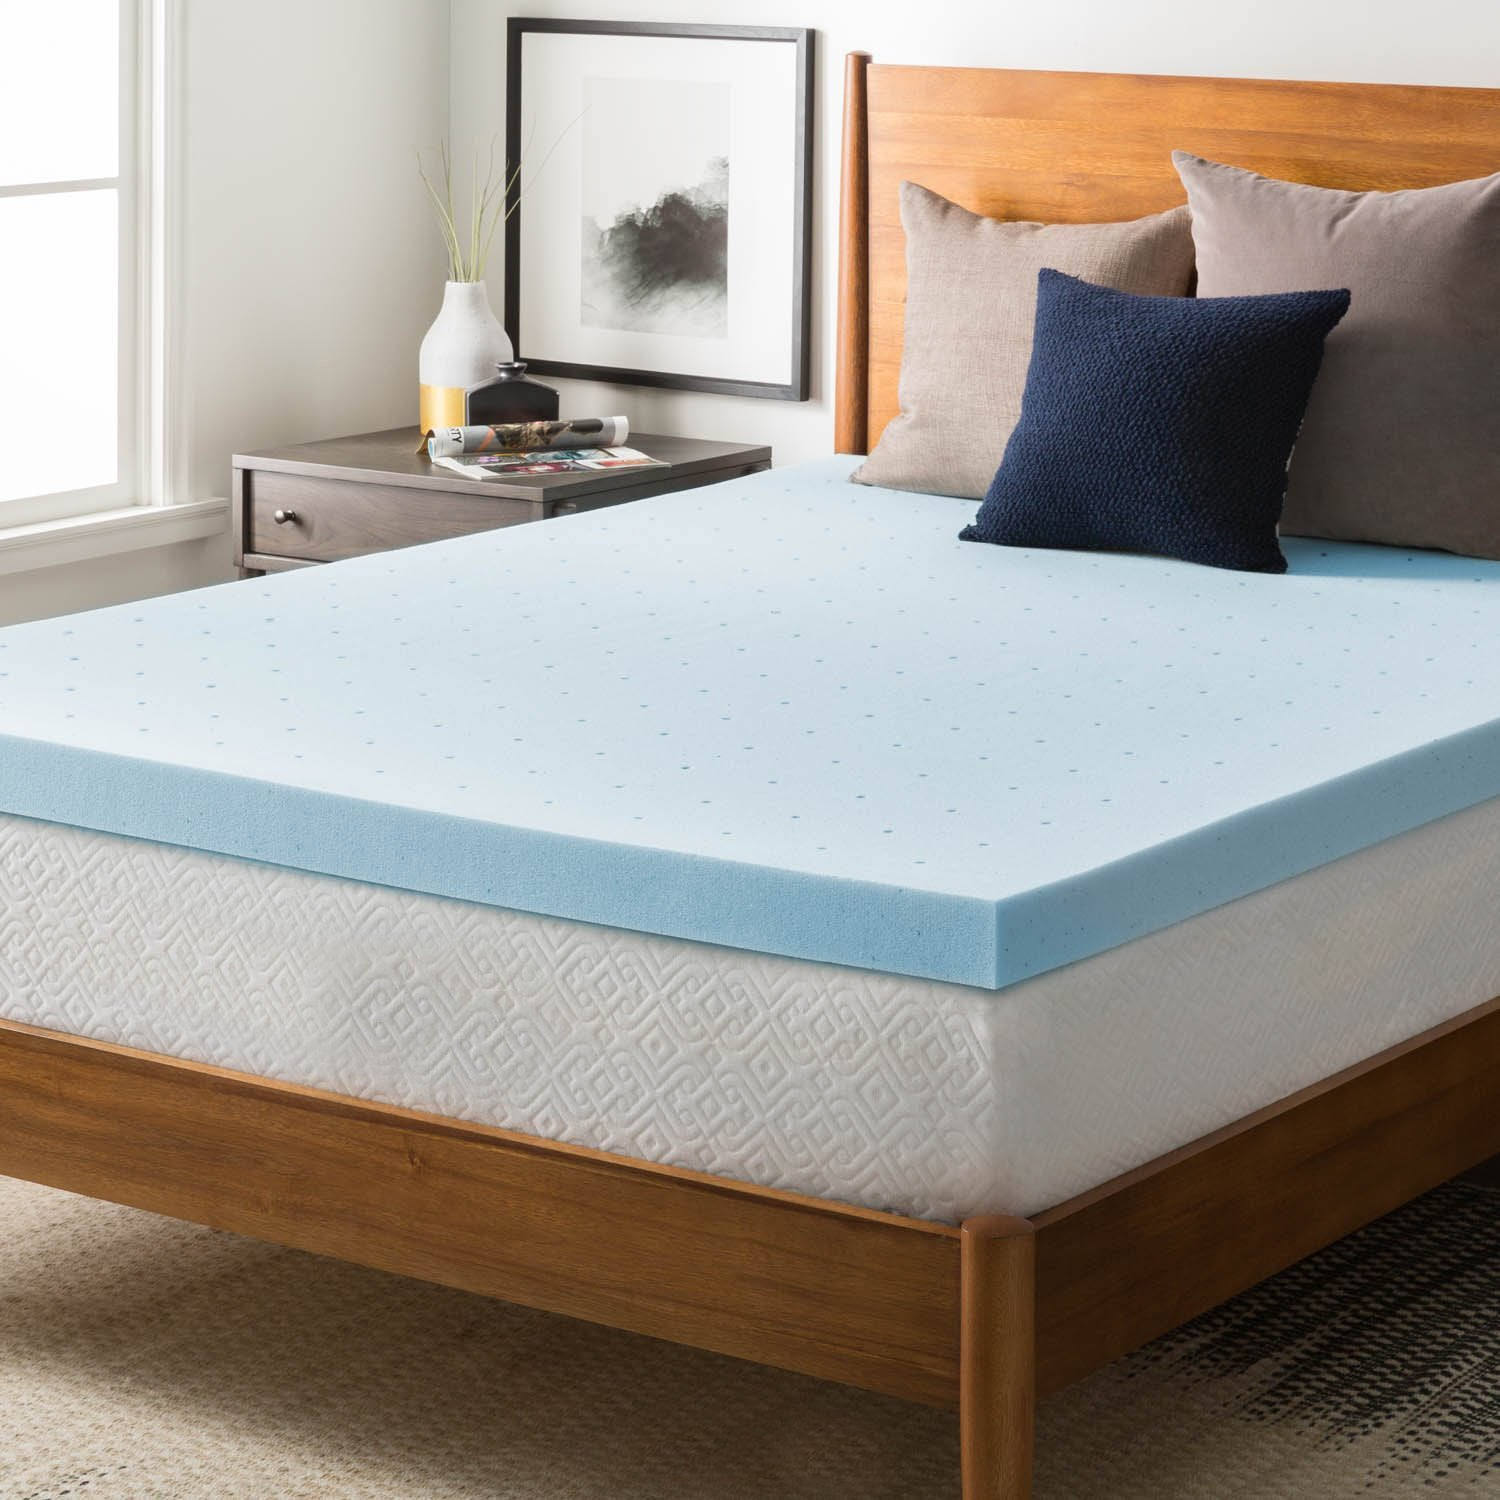 Nestl Bedding Mattress Topper, Memory Foam Topper, Gel Infused Memory Foam Mattress Topper, Ventilated Design Mattress Pad